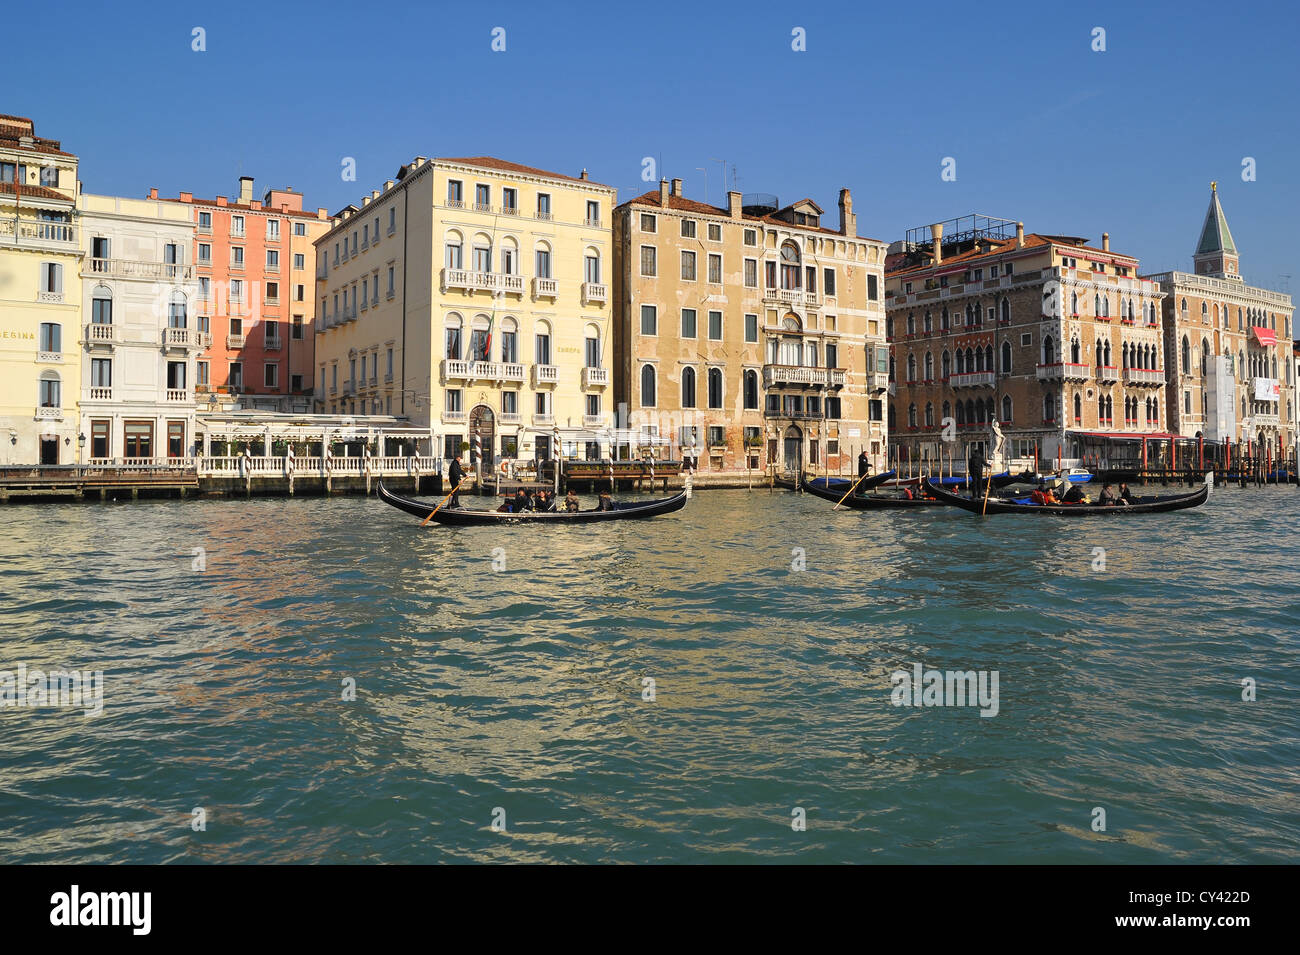 Hotel Europa on the Grand Canal, Venice, Italy. - Stock Image